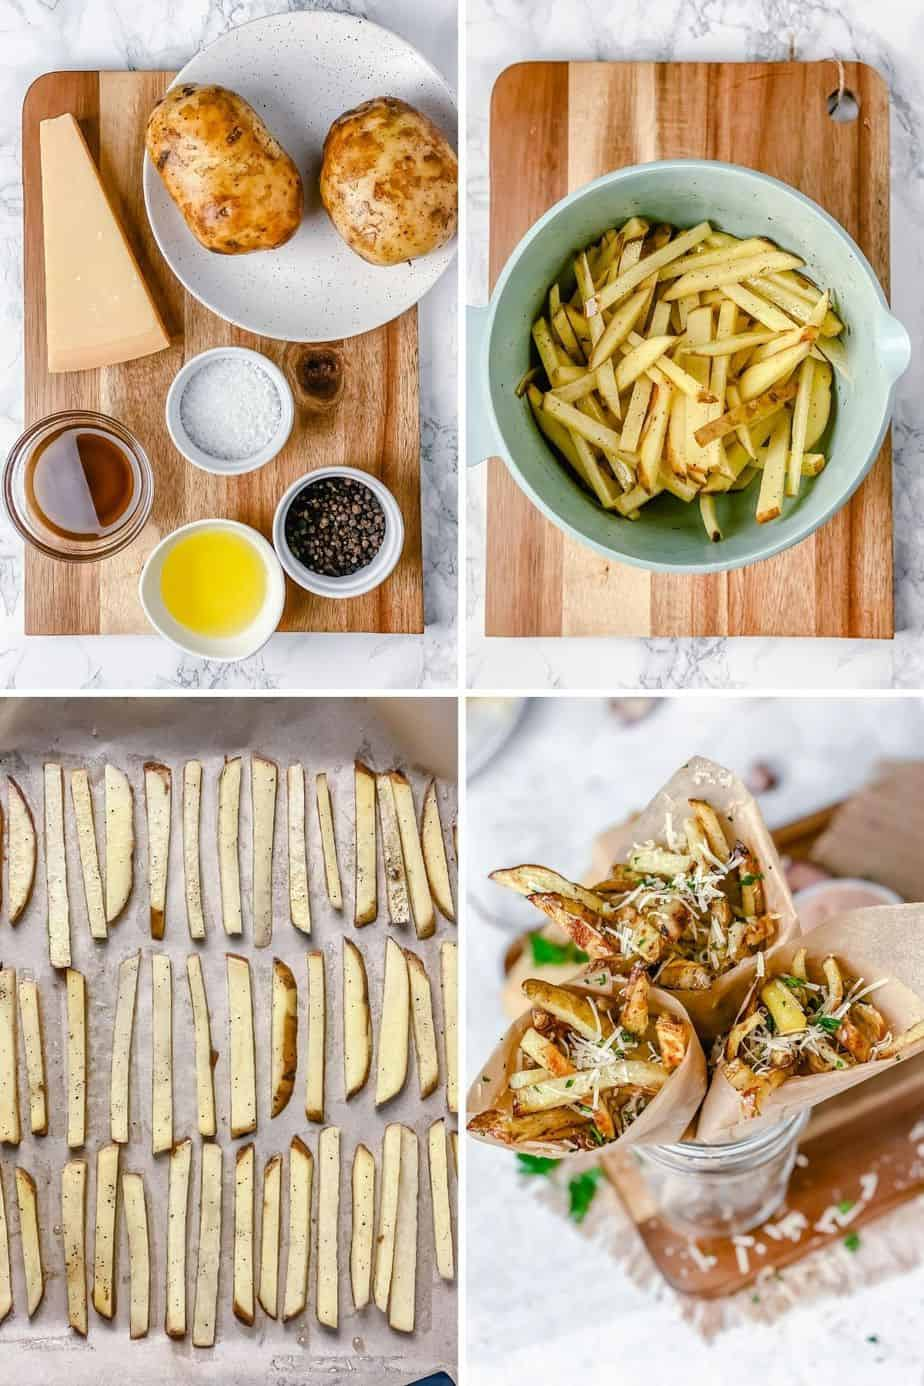 This recipe for Homemade Parmesan Truffle Fries is so good, no frying, easy and quick! Paired with delicious sweet paprika dipping sauce makes it a beautiful lazy evening dinner meal. The Yummy Bowl